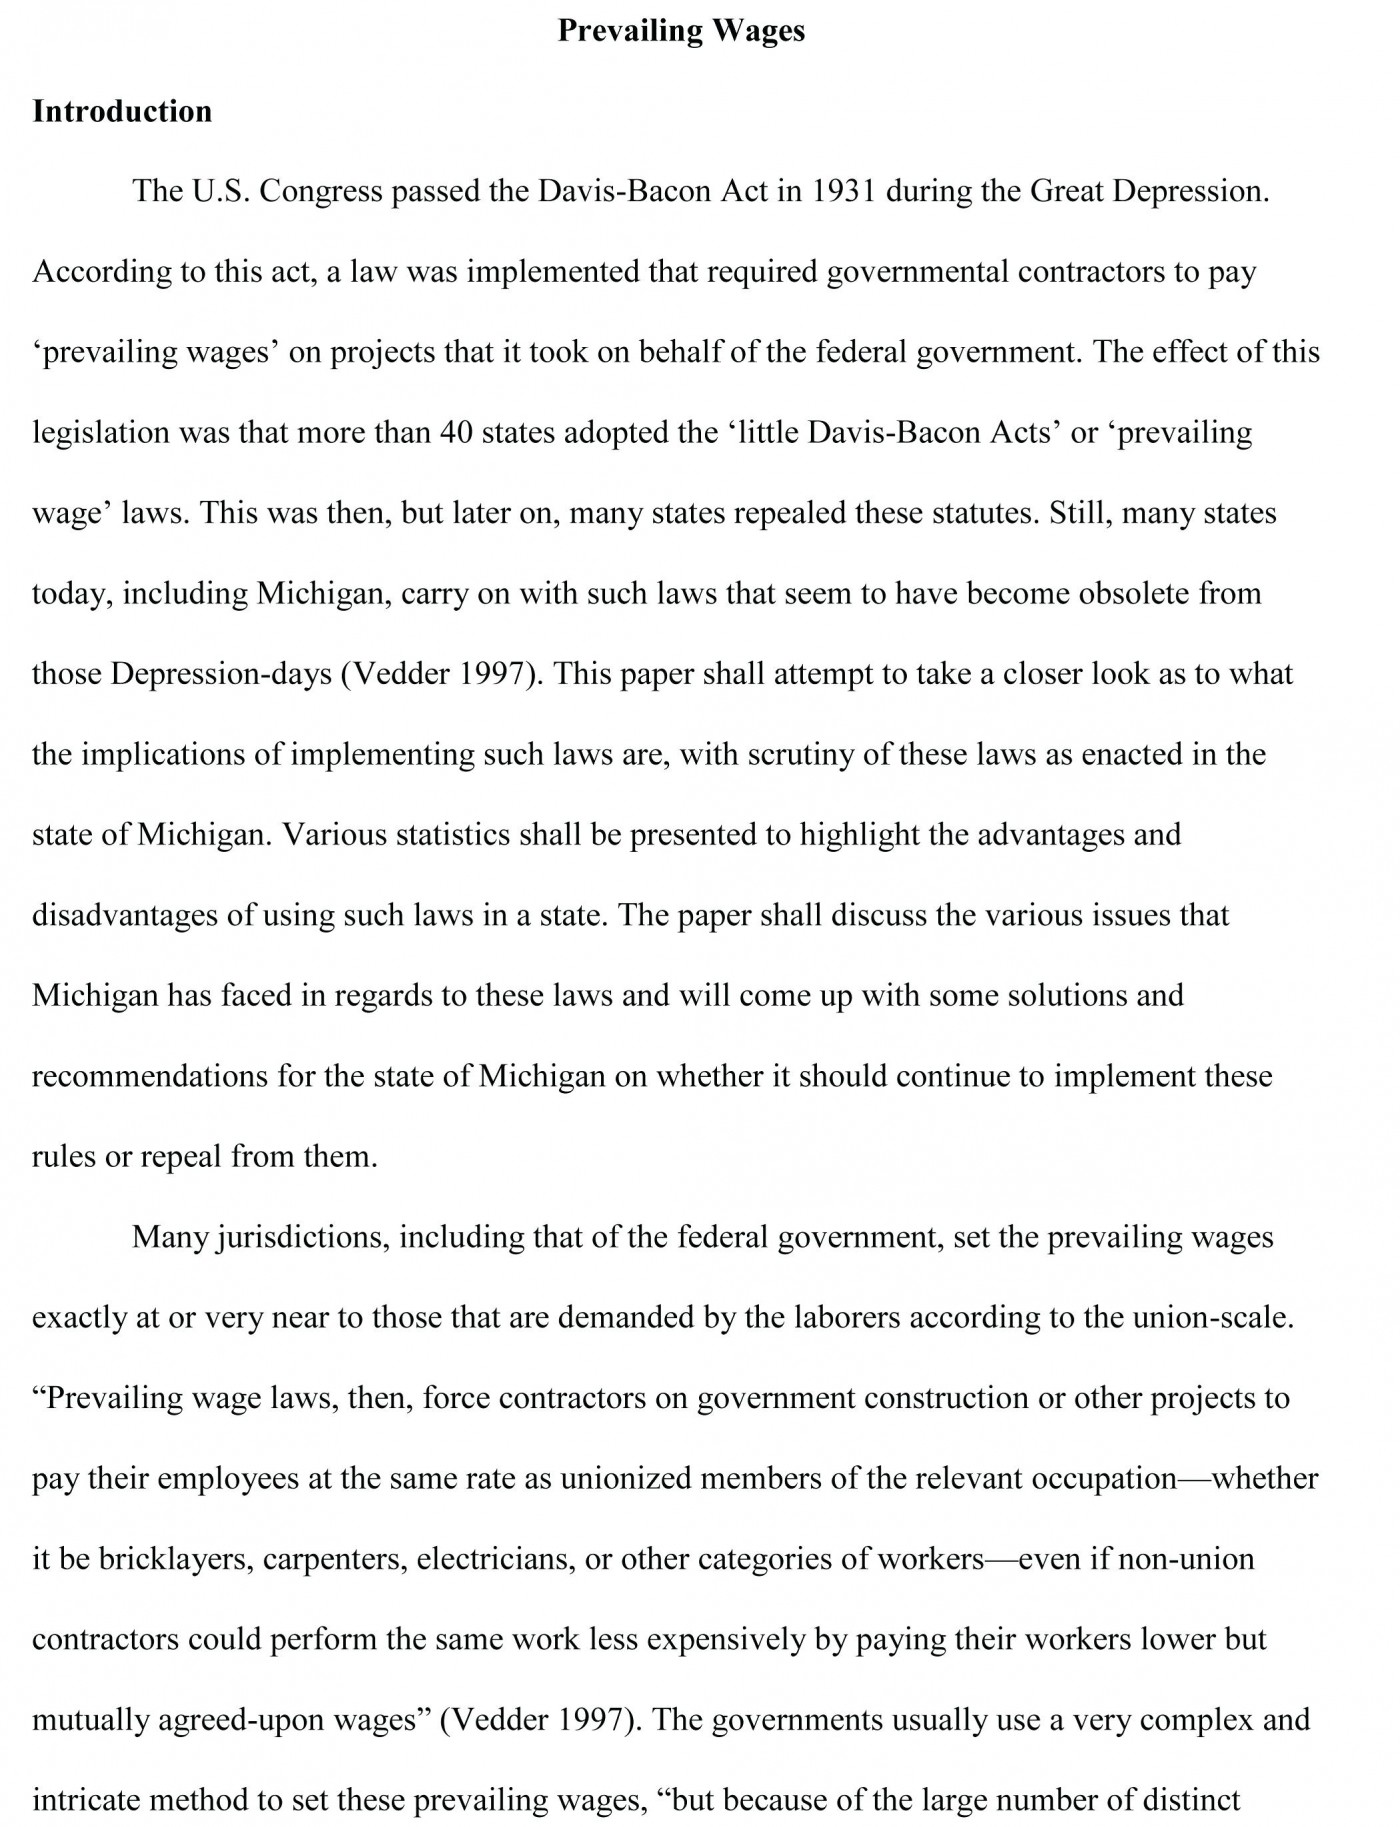 001 Essayxample Synthesisxamples Templtexmples Quickplumber Us Government And Politics Sttement Rgumenttive Sensational Synthesis Essay Ap Lang 2016 Example Pdf Definition 1400